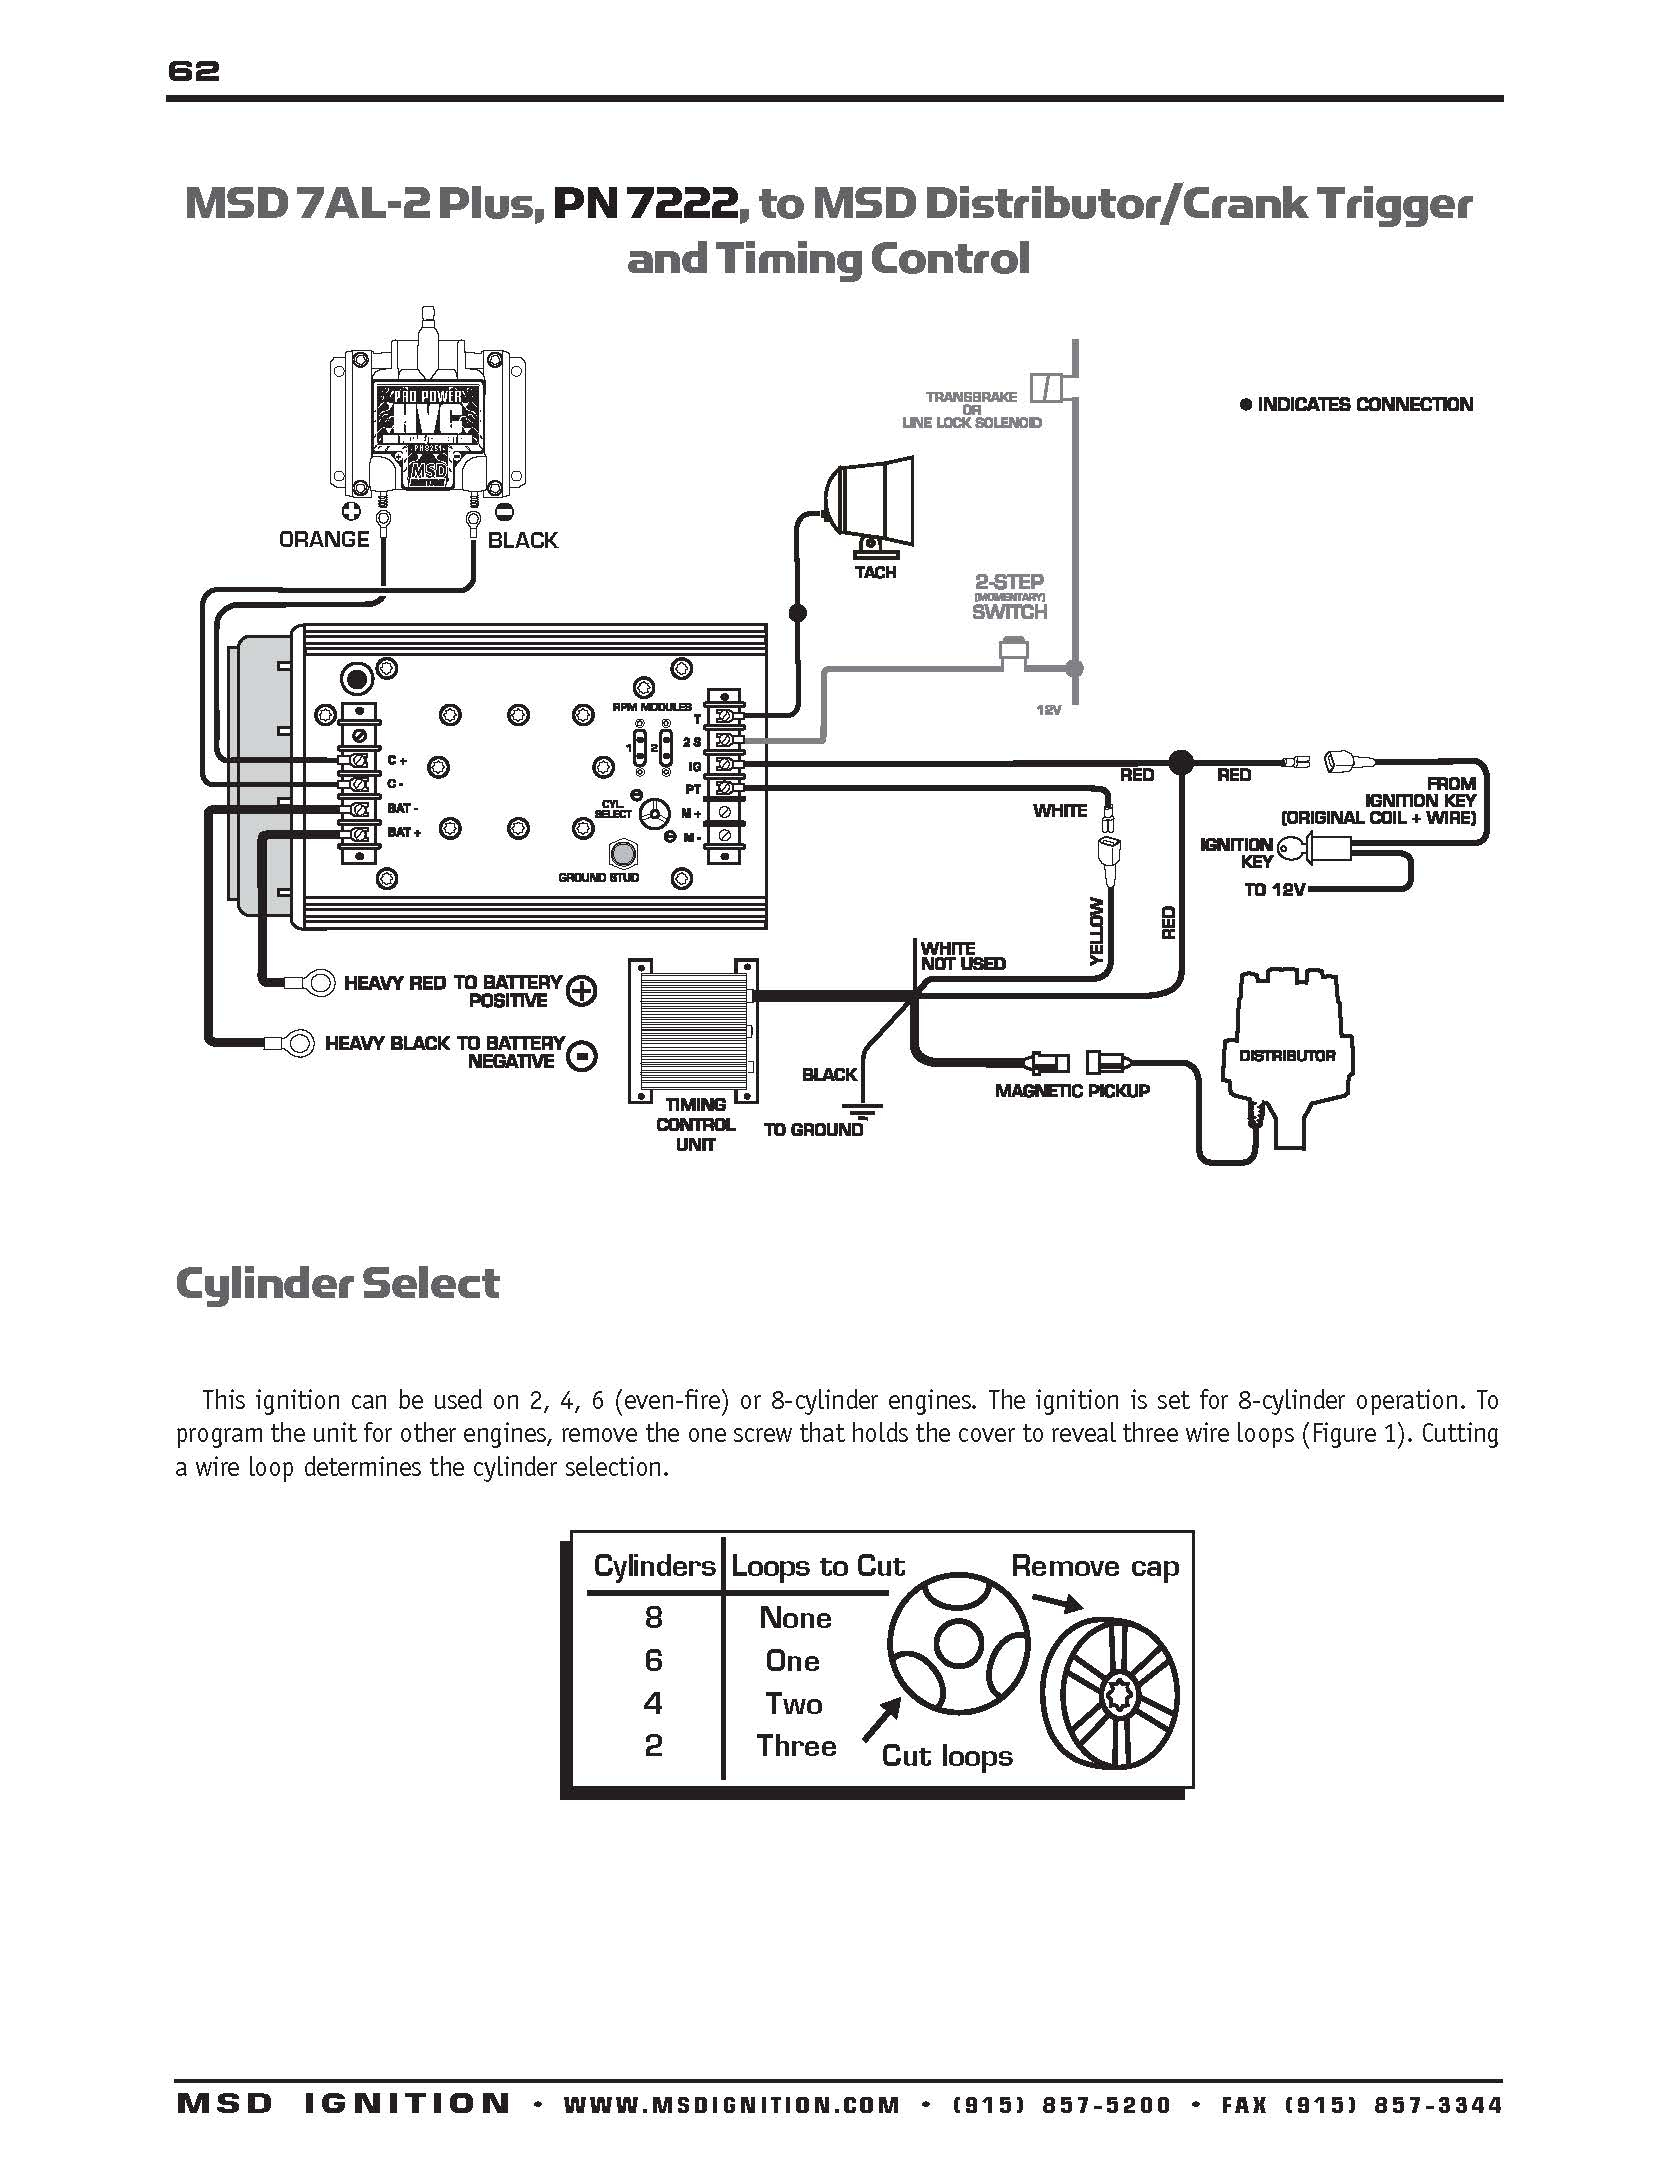 Msd Distributor Wiring Diagram - Wiring Diagram Blog - Msd Distributor Wiring Diagram